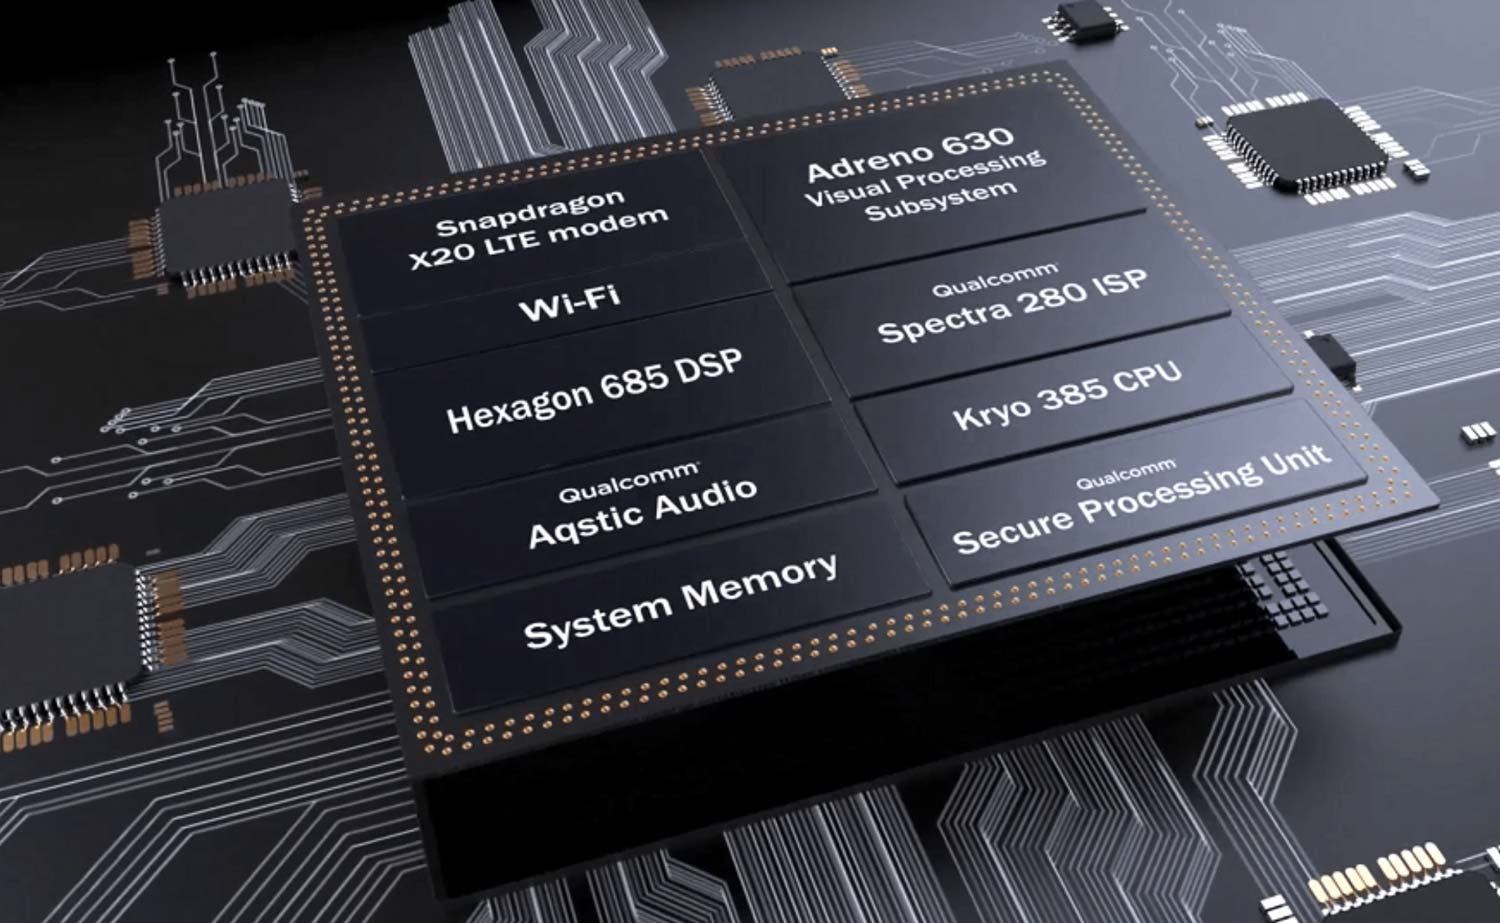 Snapdragon 845: What It Means for Your Next Smartphone | Tom's Guide